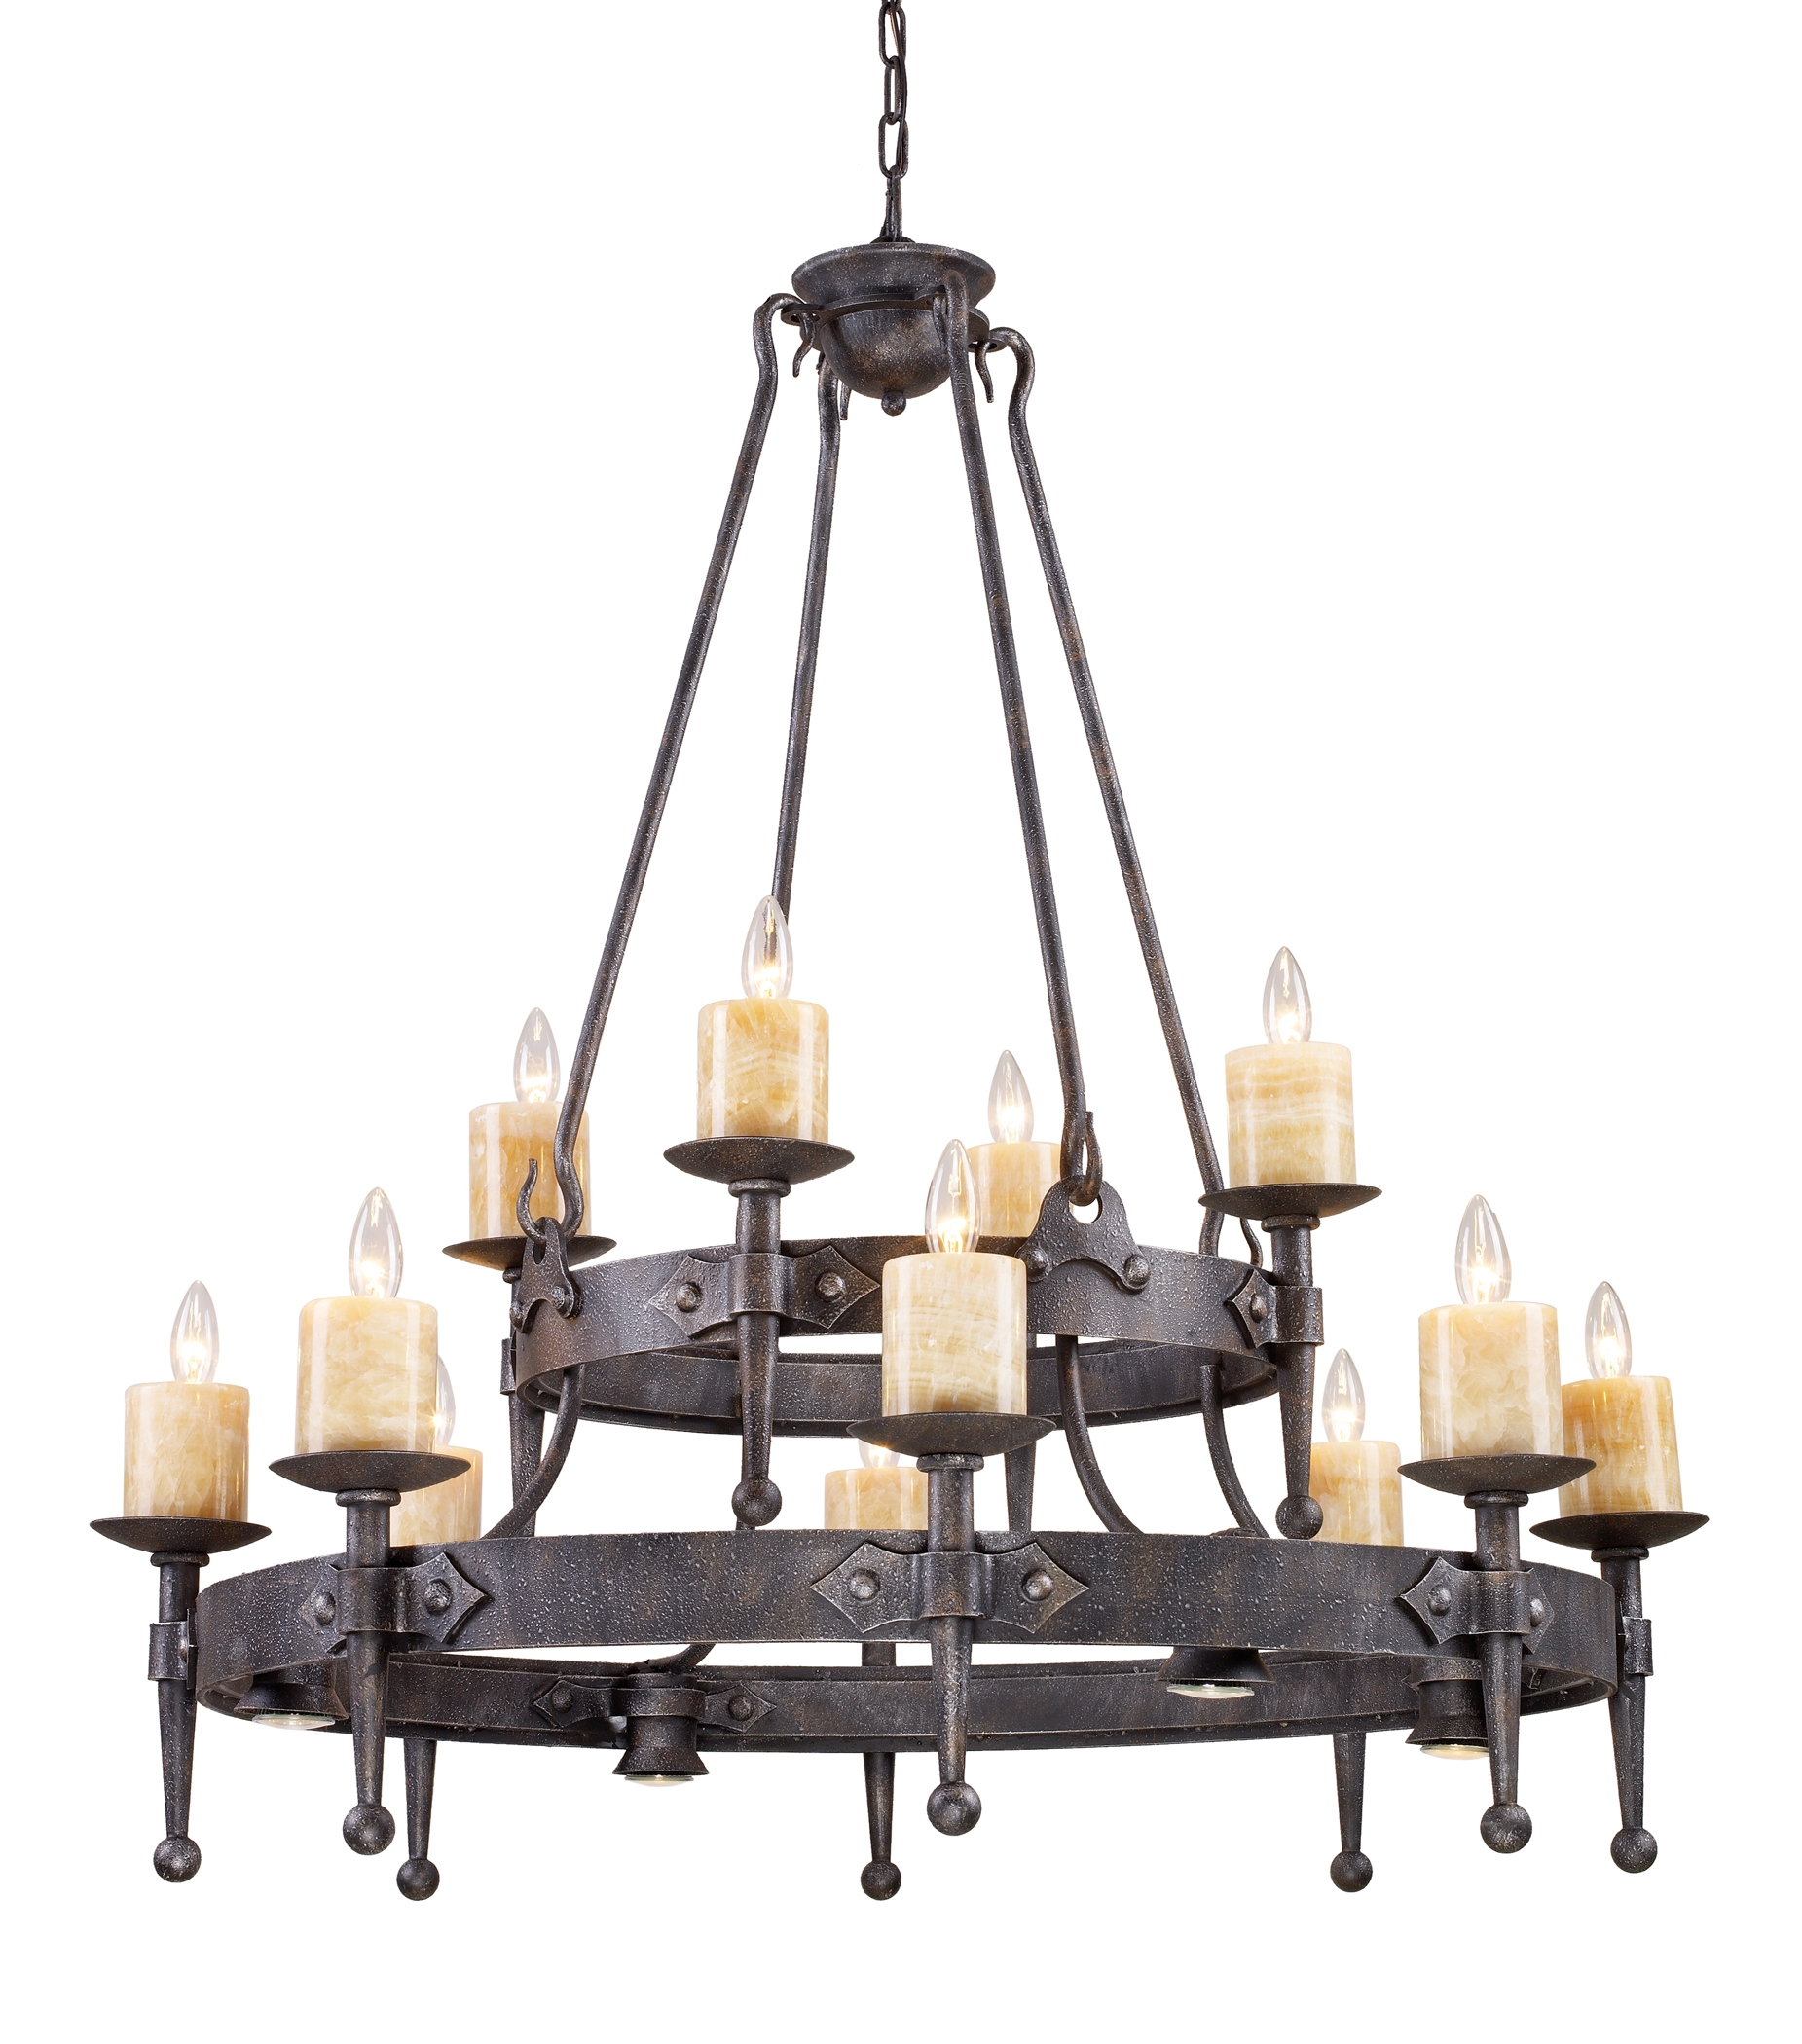 Wrought Iron Chandeliers Rustic Magnificent On Modern Home Decor For Large Iron Chandeliers (Image 14 of 15)